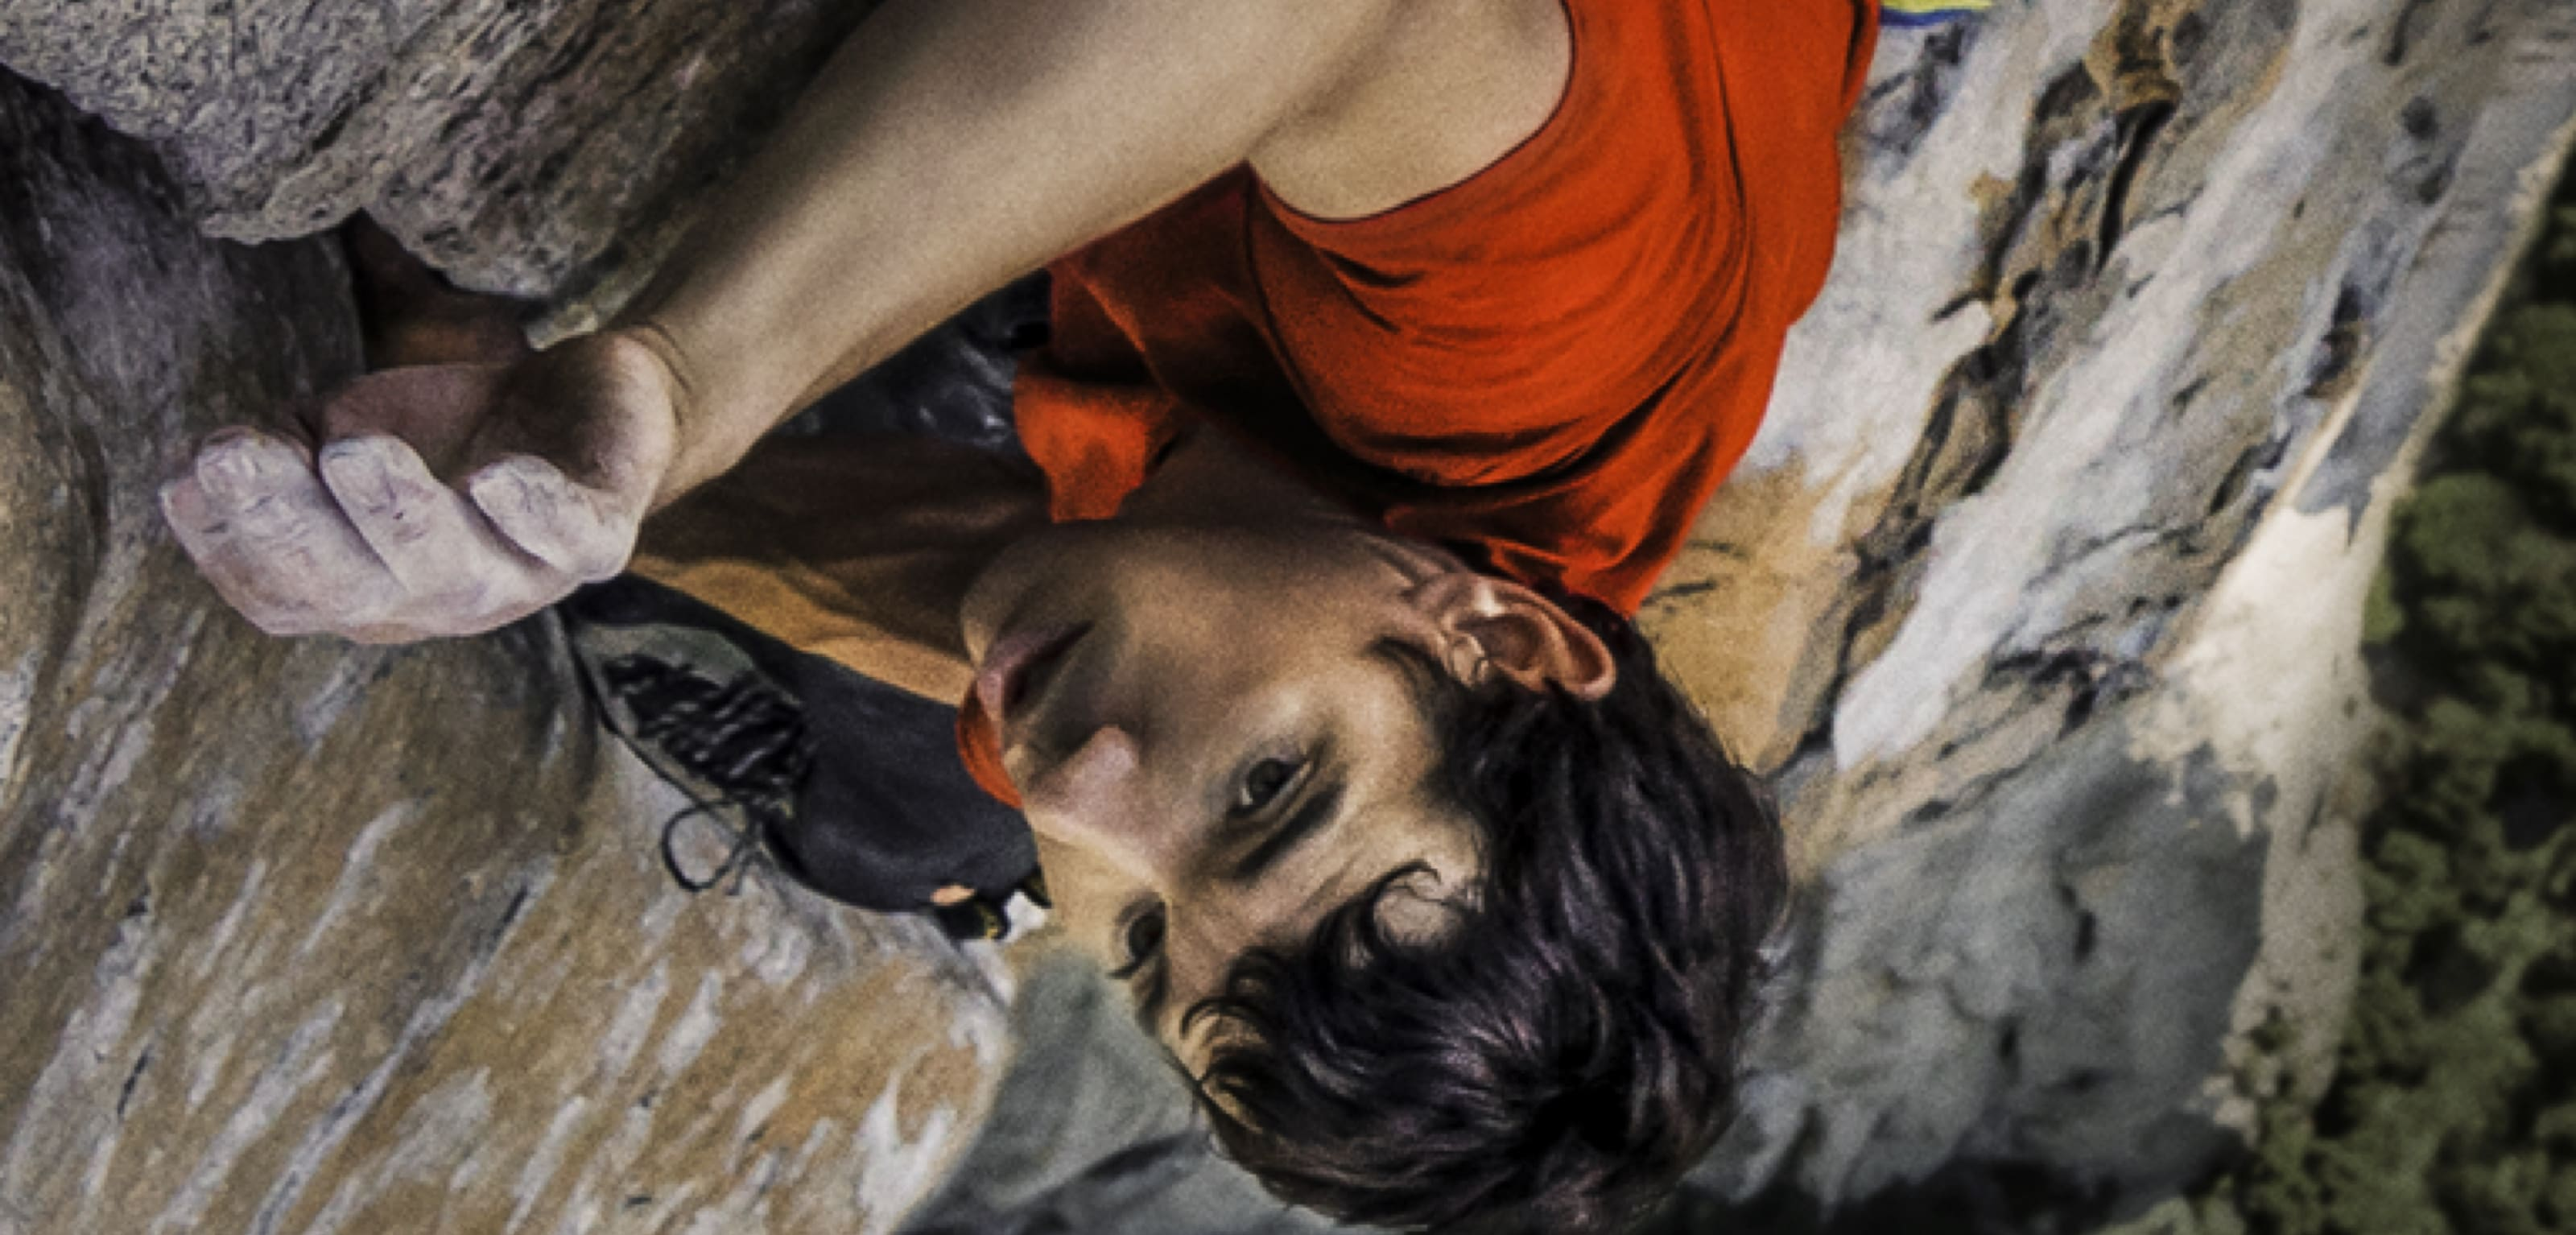 A still image from Free Solo